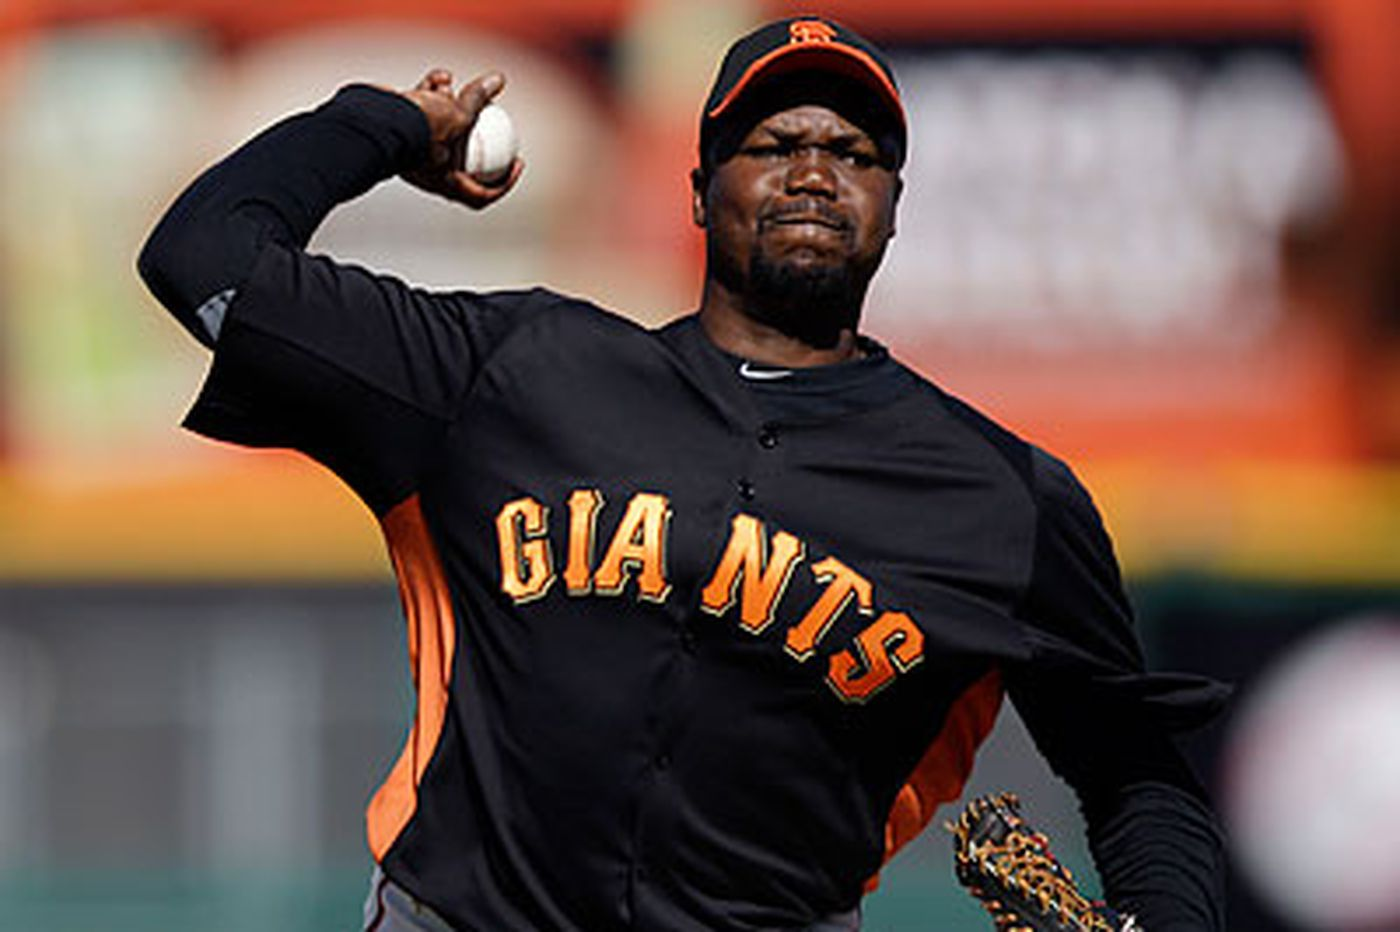 Touch 'Em All: Giants' Mota draws 100-game suspension